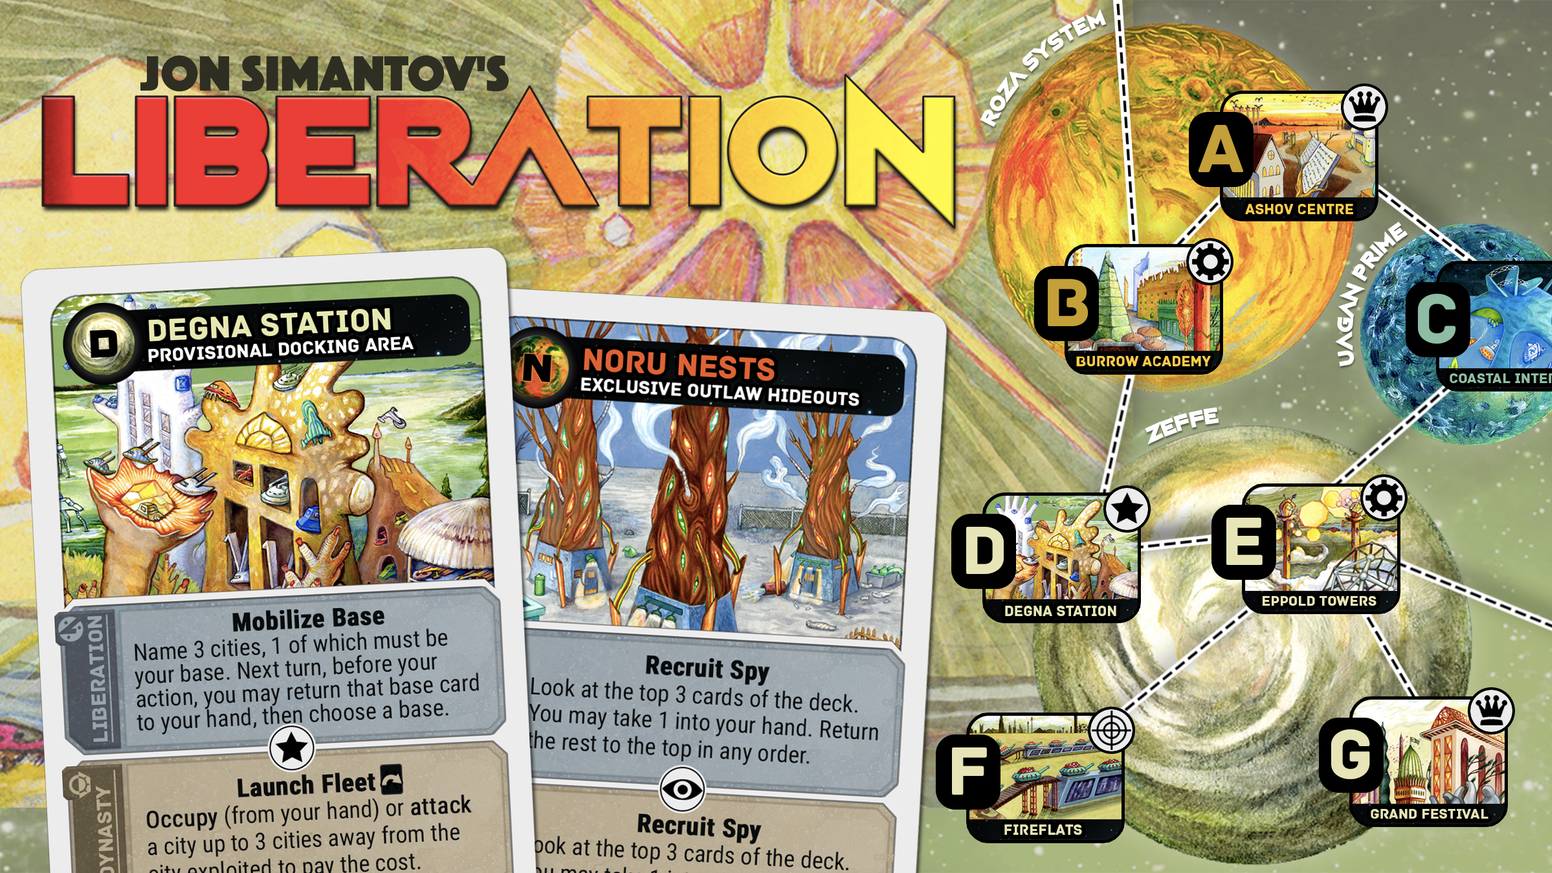 Visit us at https://buttonshygames.com/products/liberation-pre-order to pre-order. A pocket-sized rebellion of galactic scale for two players. Comes with free Warped World expansion. Only $10 plus shipping!